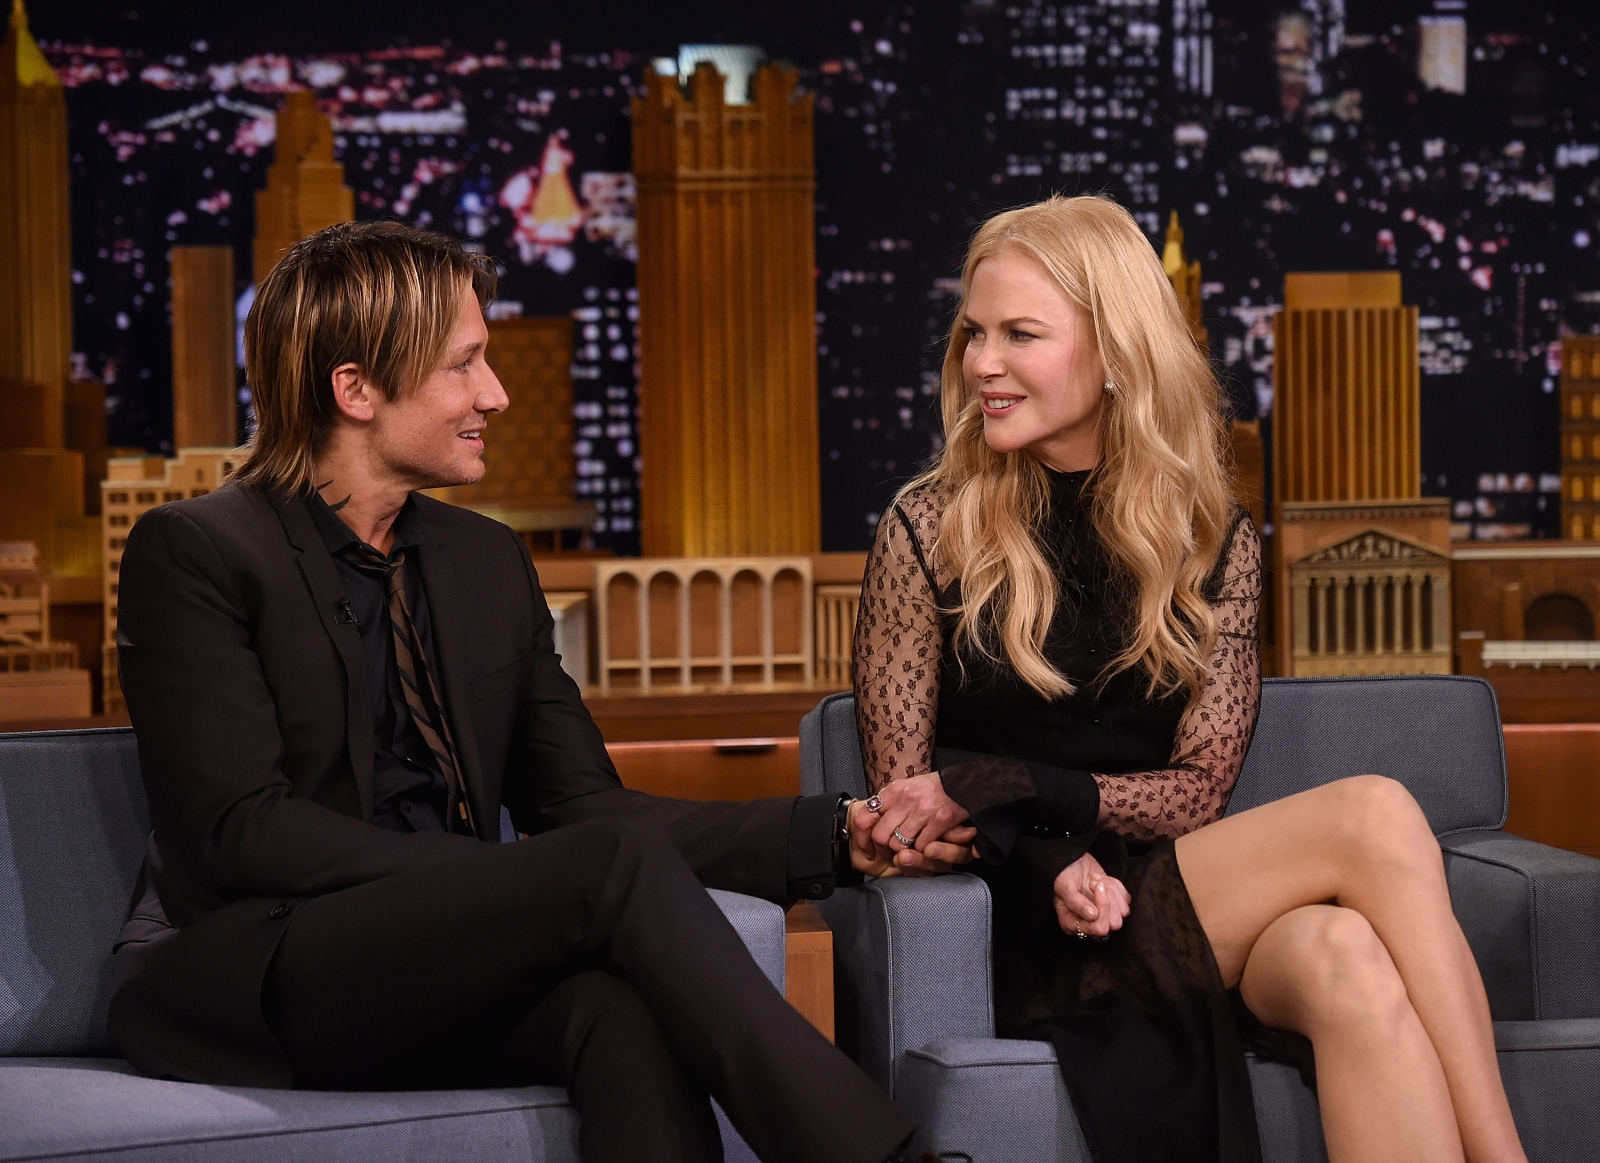 Nicole Kidman details supporting husband Keith Urban in his sobriety